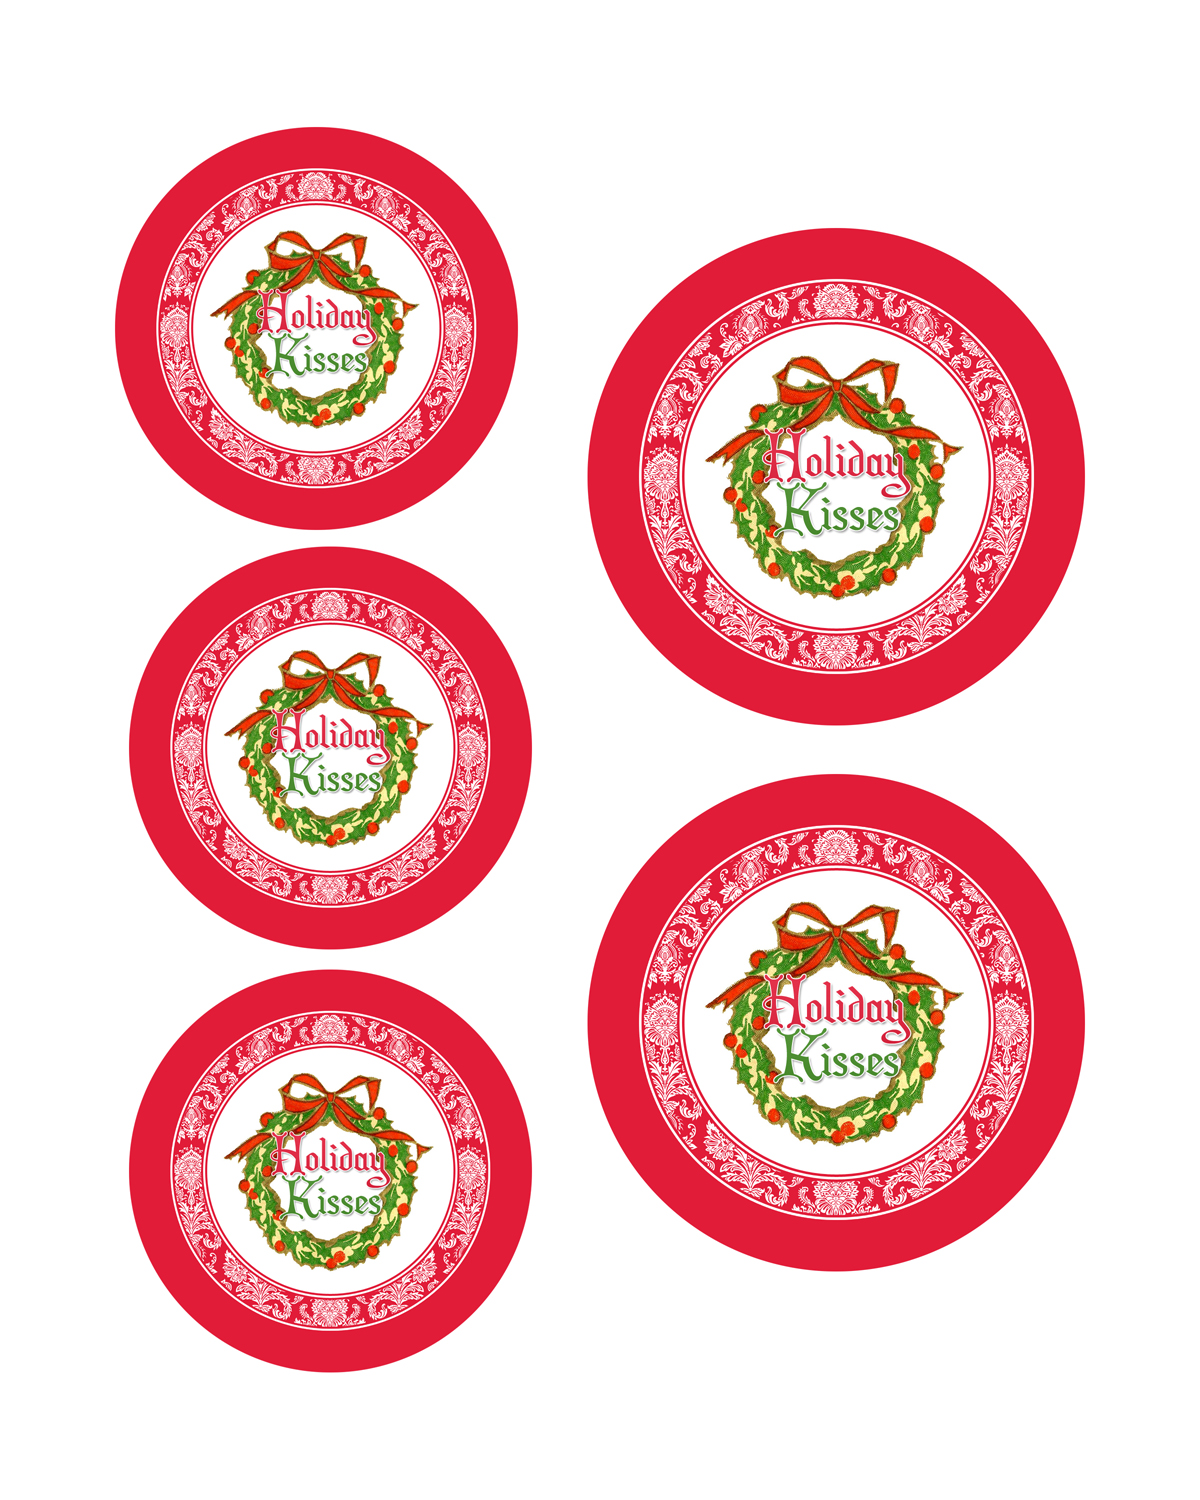 Printable Candy Jar Labels for the Holidays - The Graphics Fairy